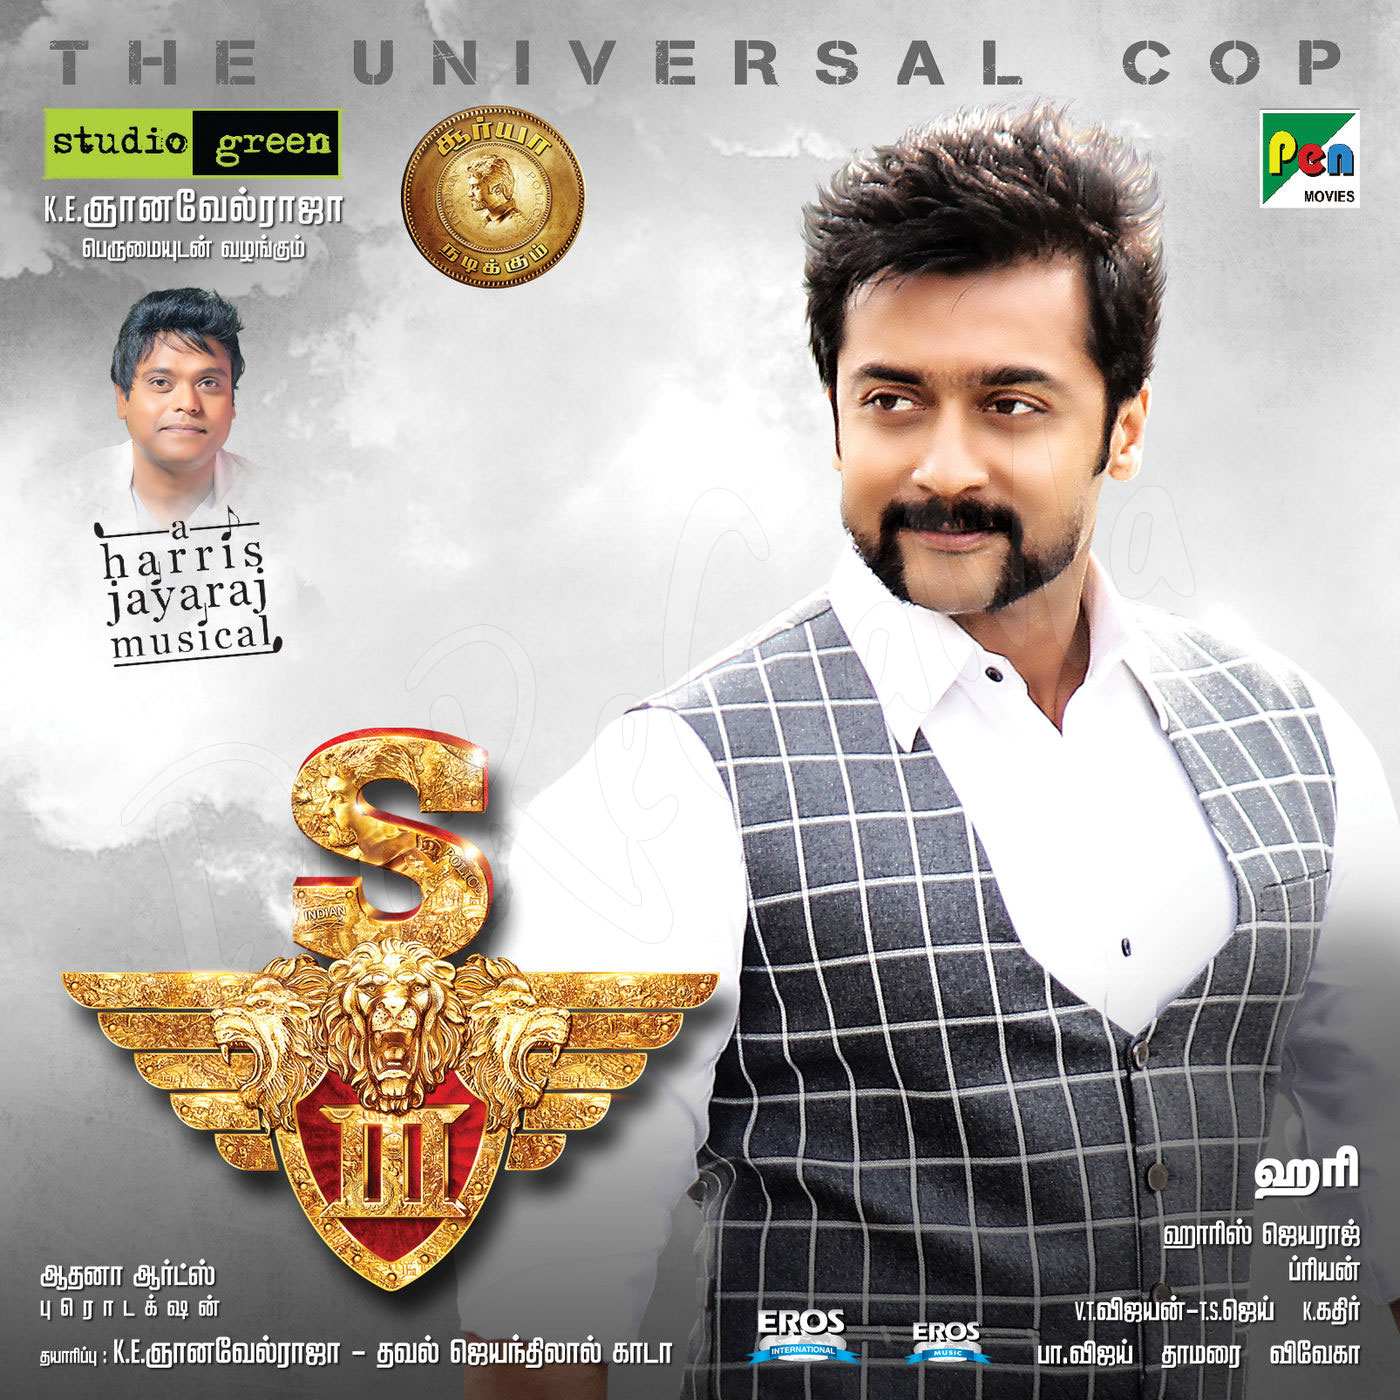 Singam-3-S3-2016-Movie-Audio-CD-Cover-Label-Poster-Wallpaper-HD